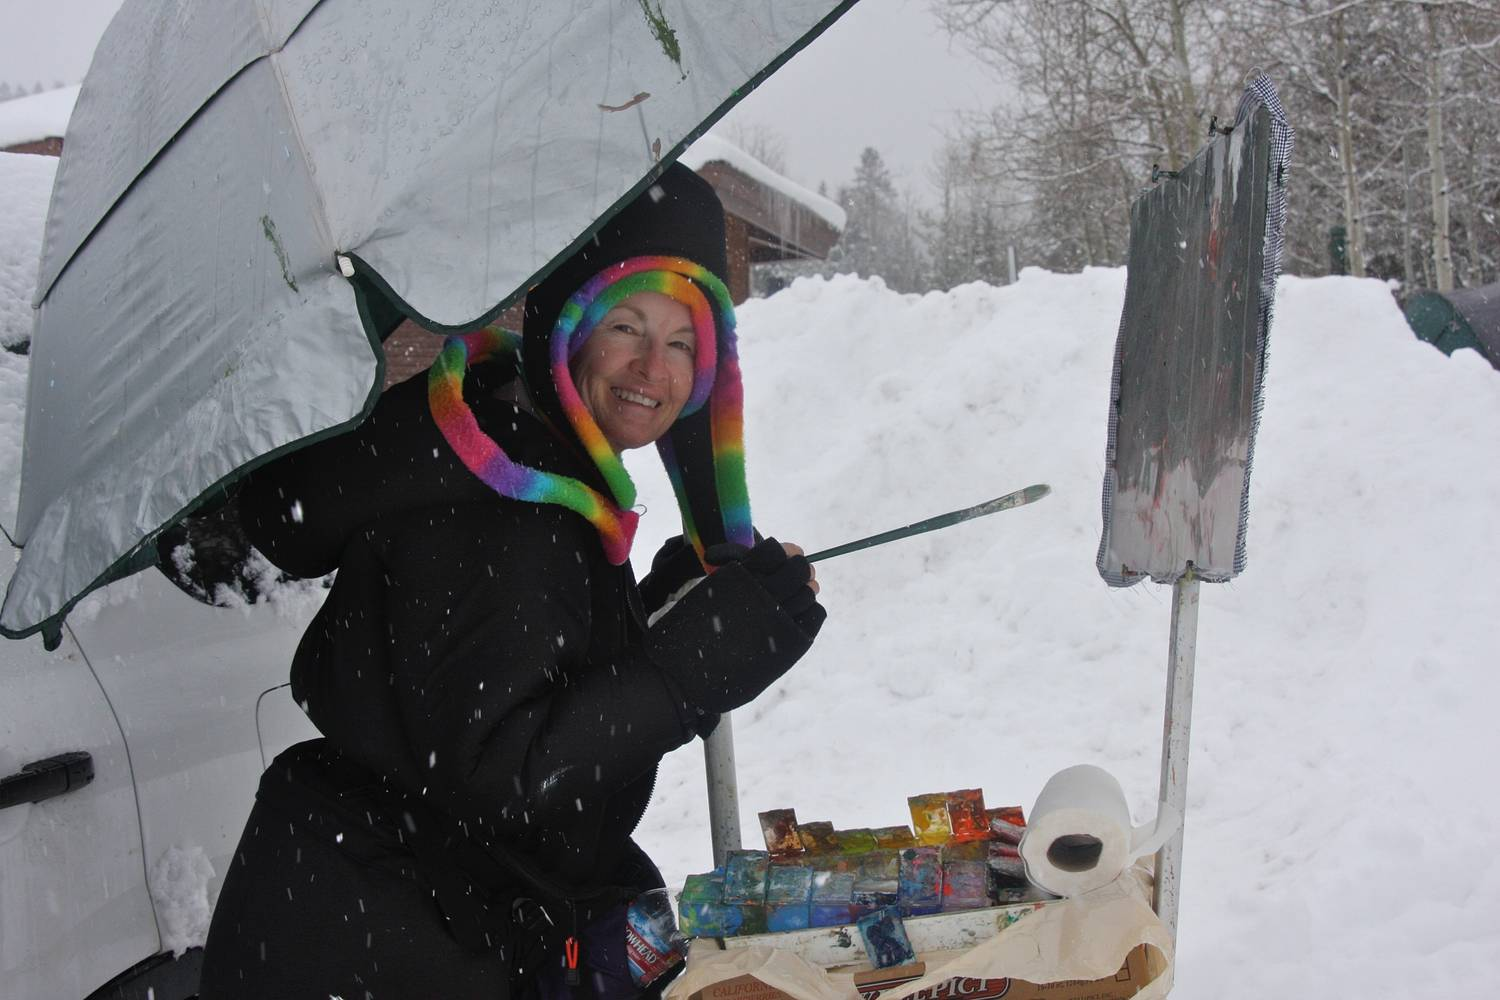 Winter Camp New Years Day - Idaho by Susette Gertsch